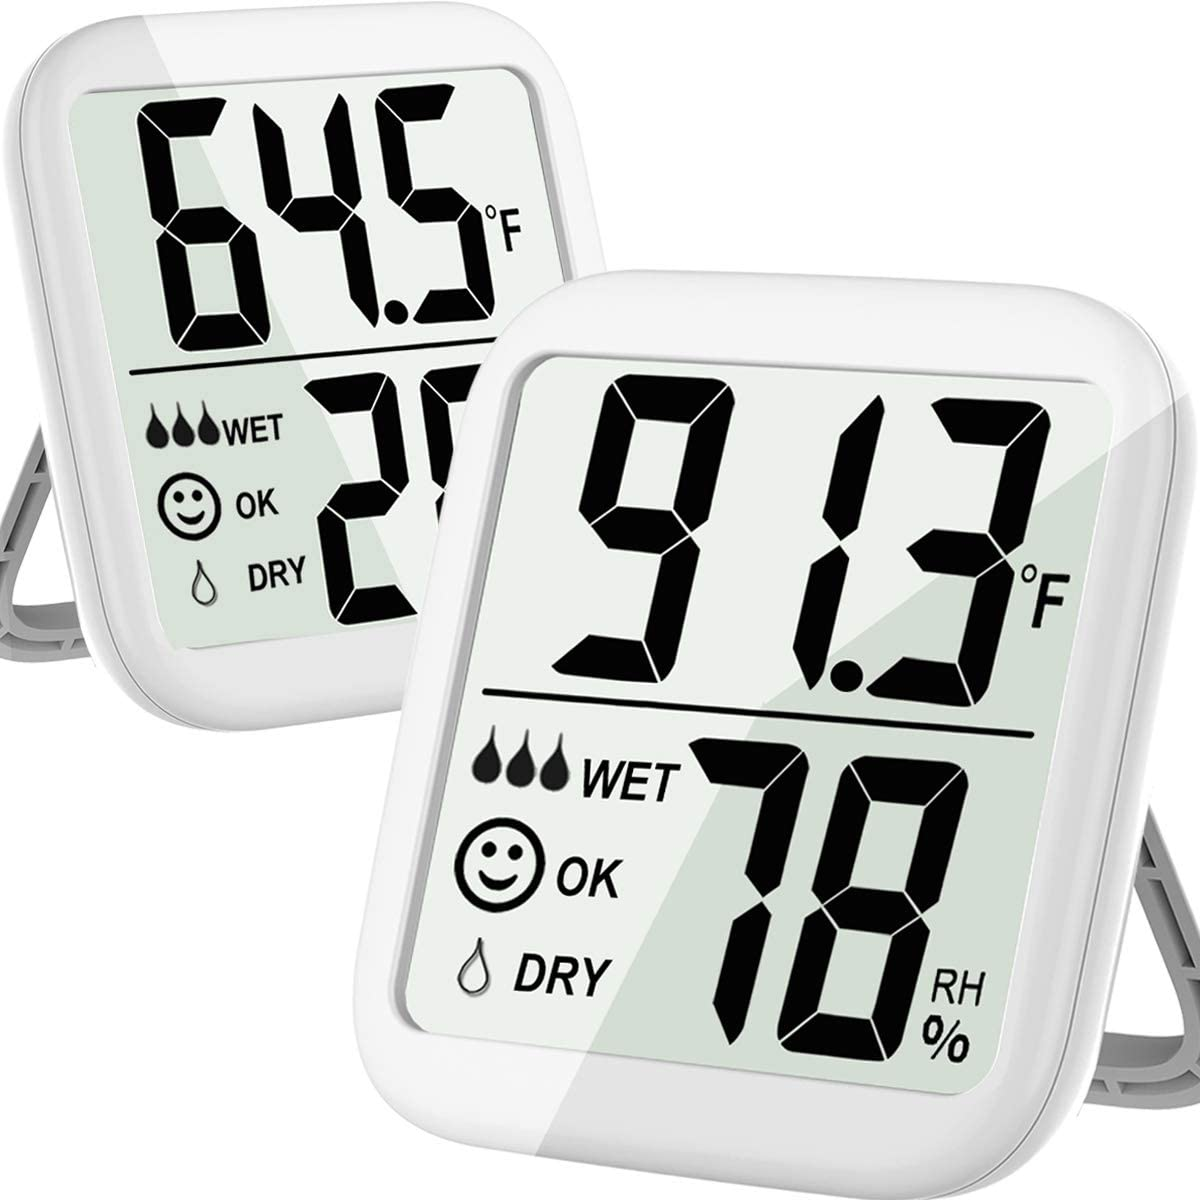 Hygrometer Indoor 2 Pack Max Digital Humidity Monitor Thermometer & Humidity Gauge with Ultra-Large Screen, Accurate Sensor for Room, Greenhouse, Wine Cellar, Basement, Gun Safe, Bathroom, Humidor